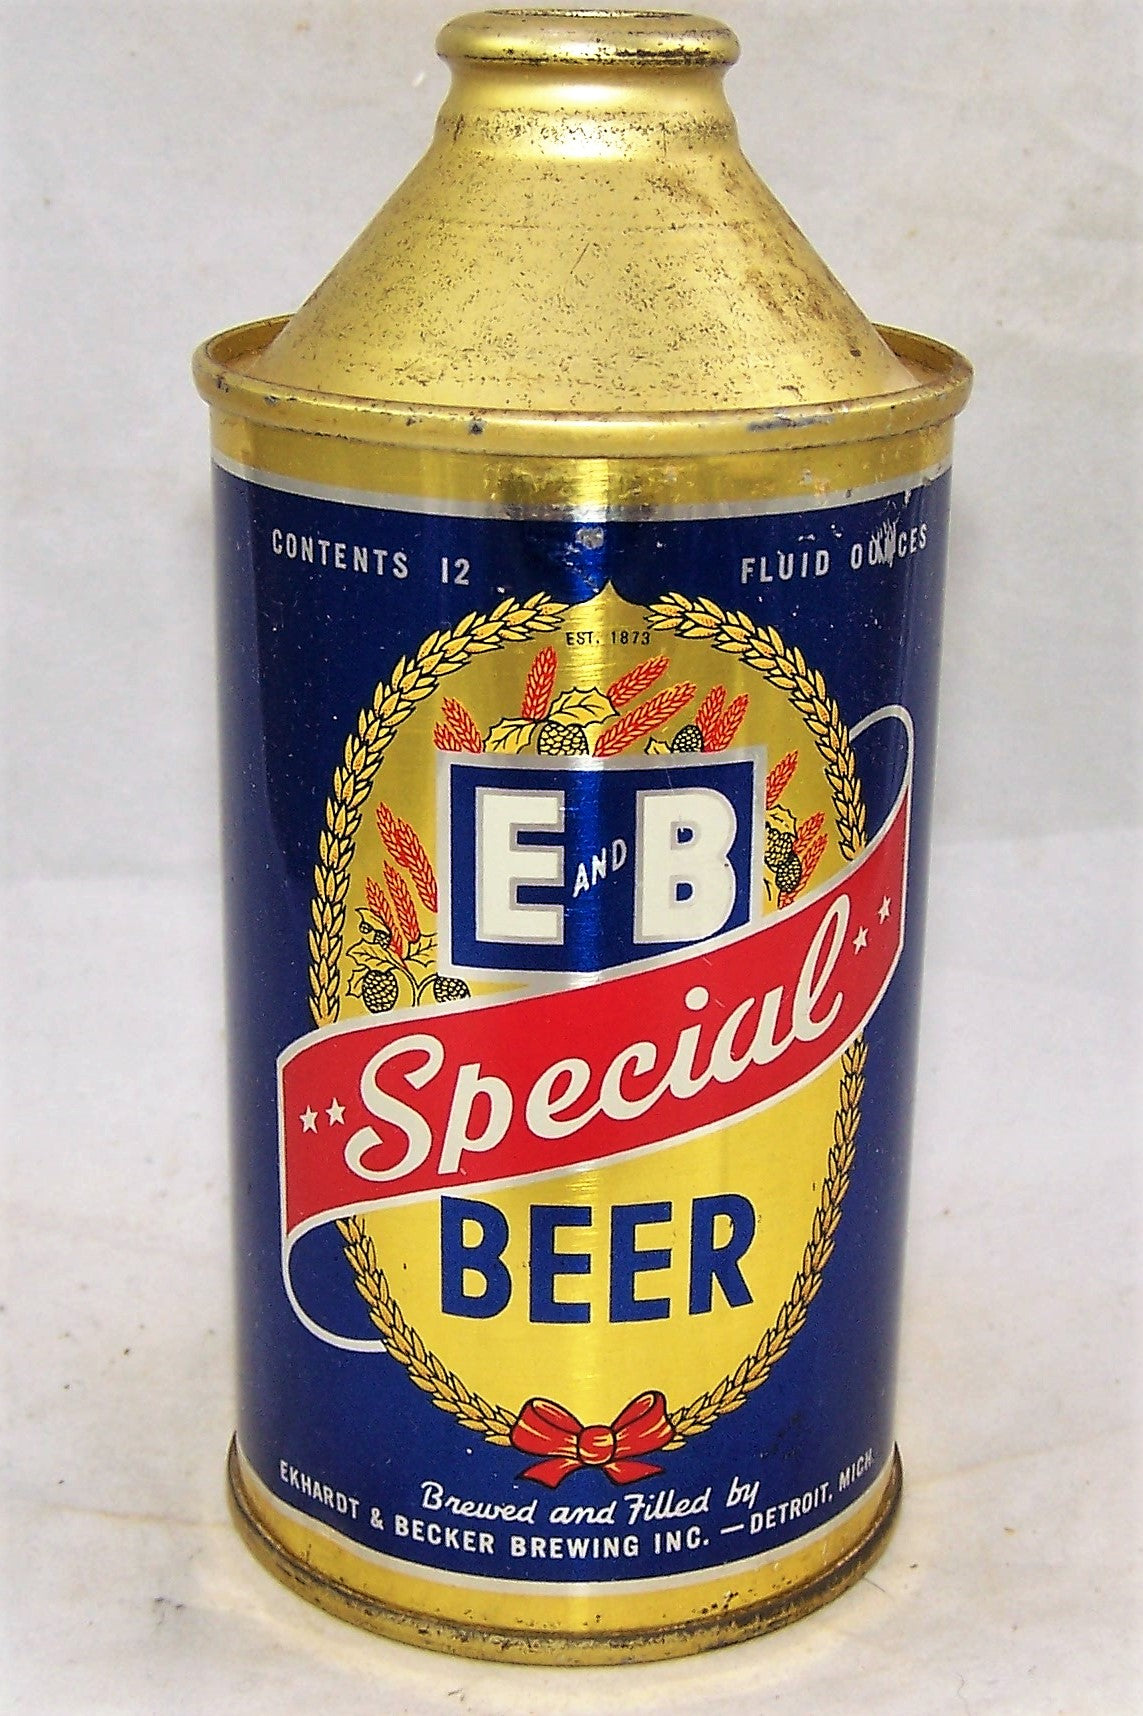 E&B Special Beer, USBC 160-15, Grade 1/1+ Sold on 10/03/19